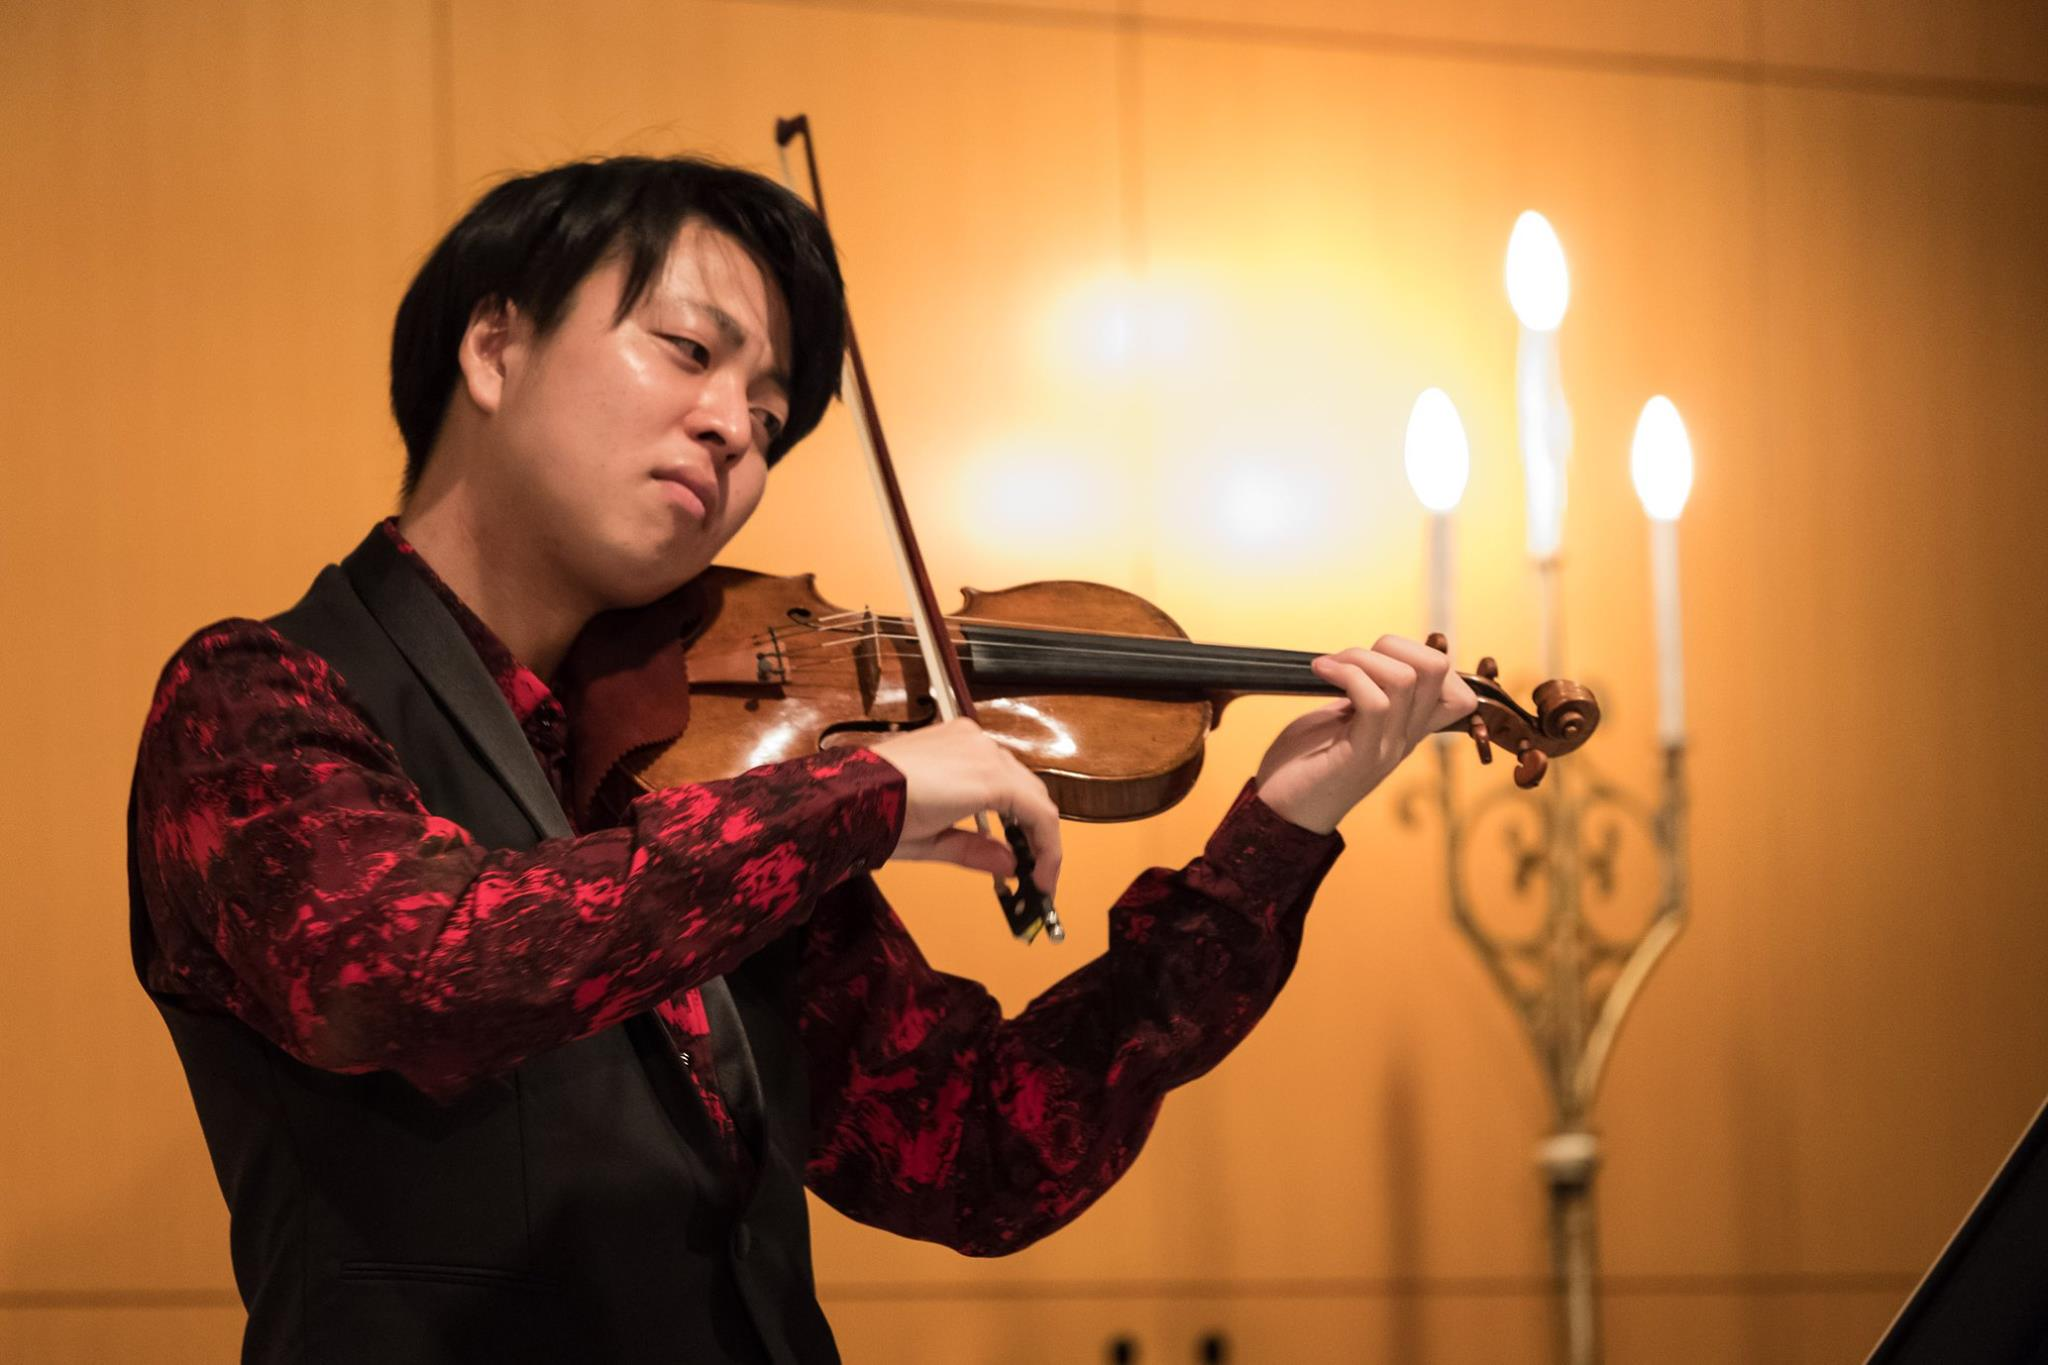 Just in: Japanese wins ARD violin contest